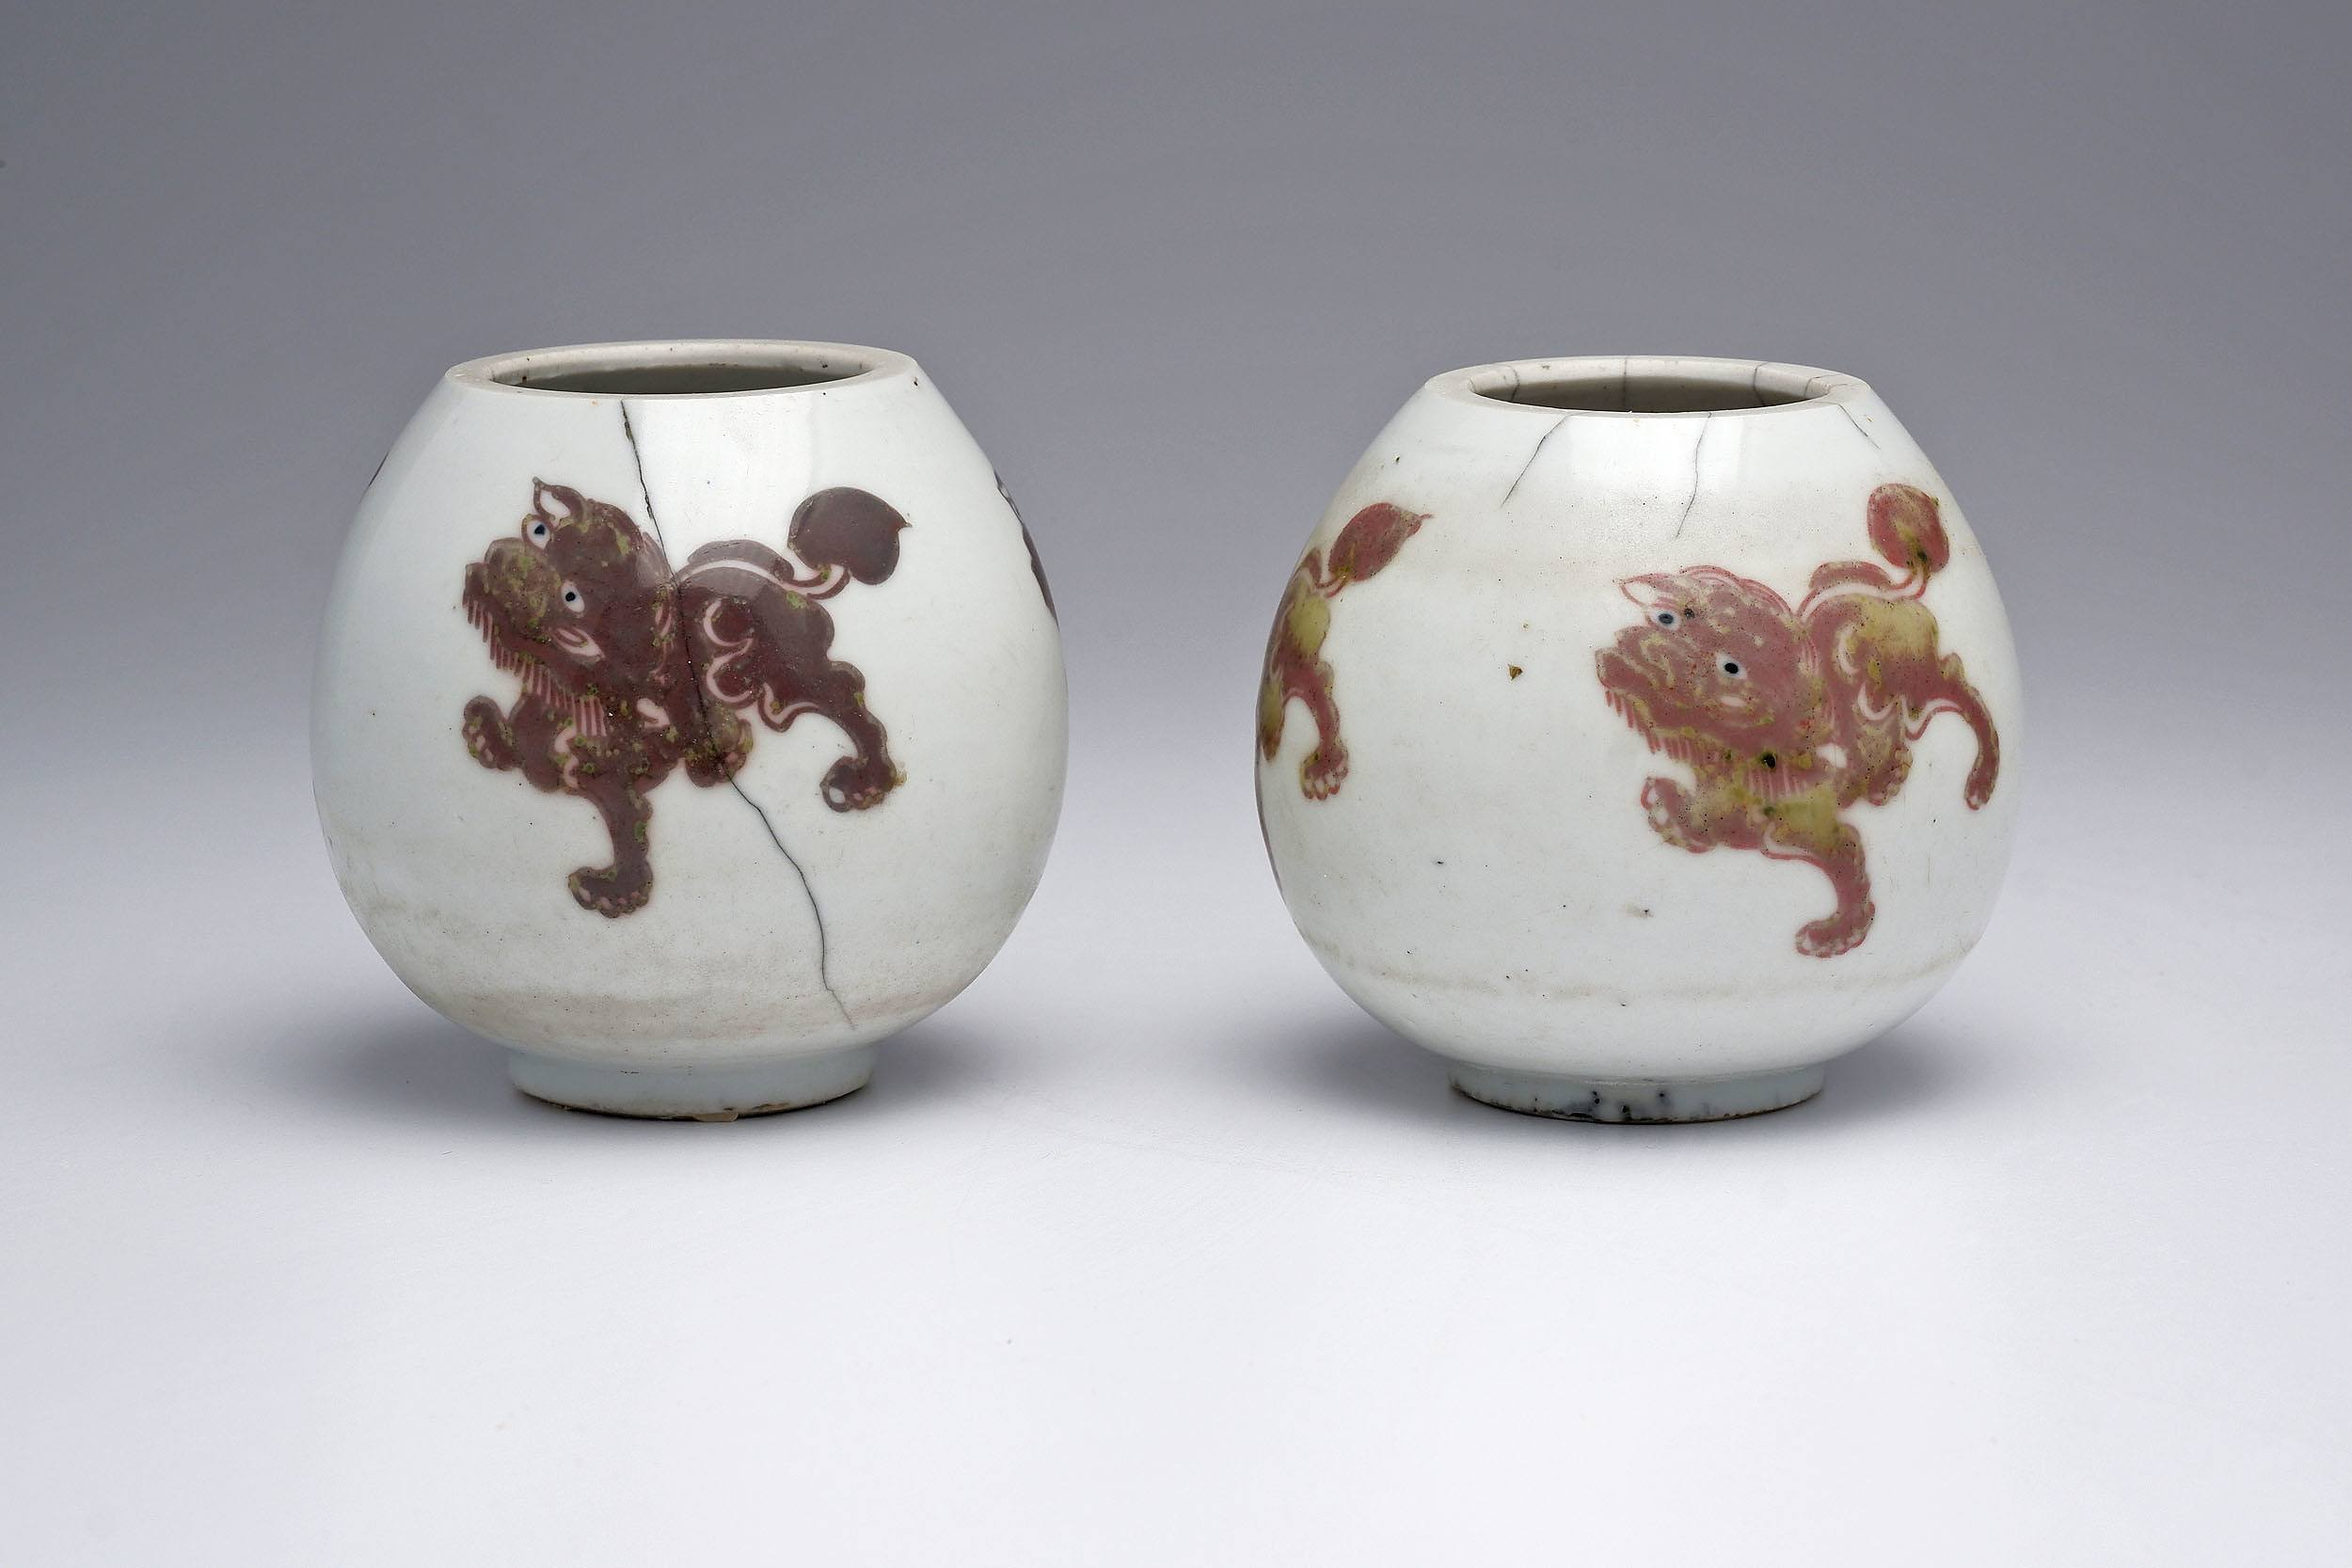 'Rare Pair of Chinese Water Pots Decorated with Buddhist Lions in Underglaze Copper Red, Probably Kangxi Period, 18th Century'